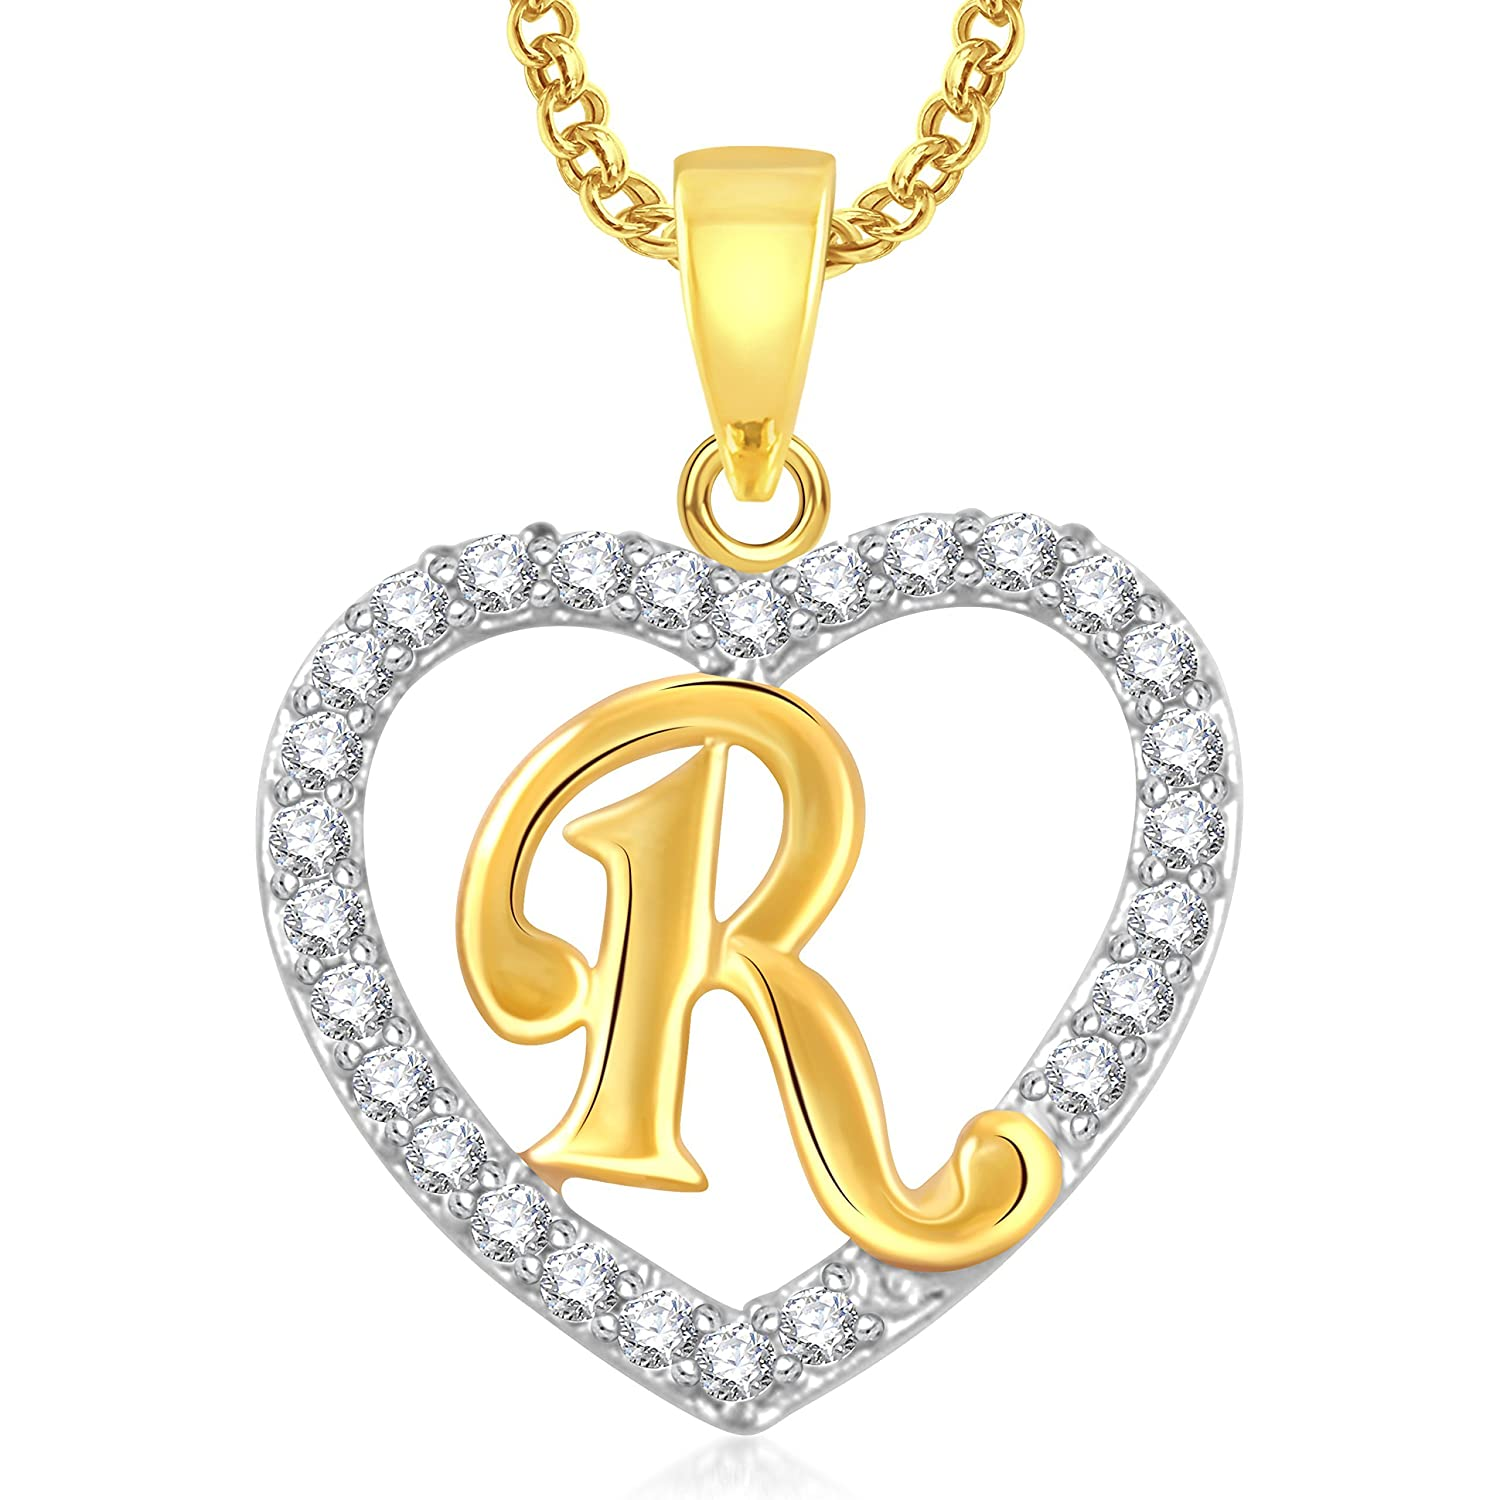 gold girl photo images chains for heart alibaba girls fashion photos pictures on designs design chain